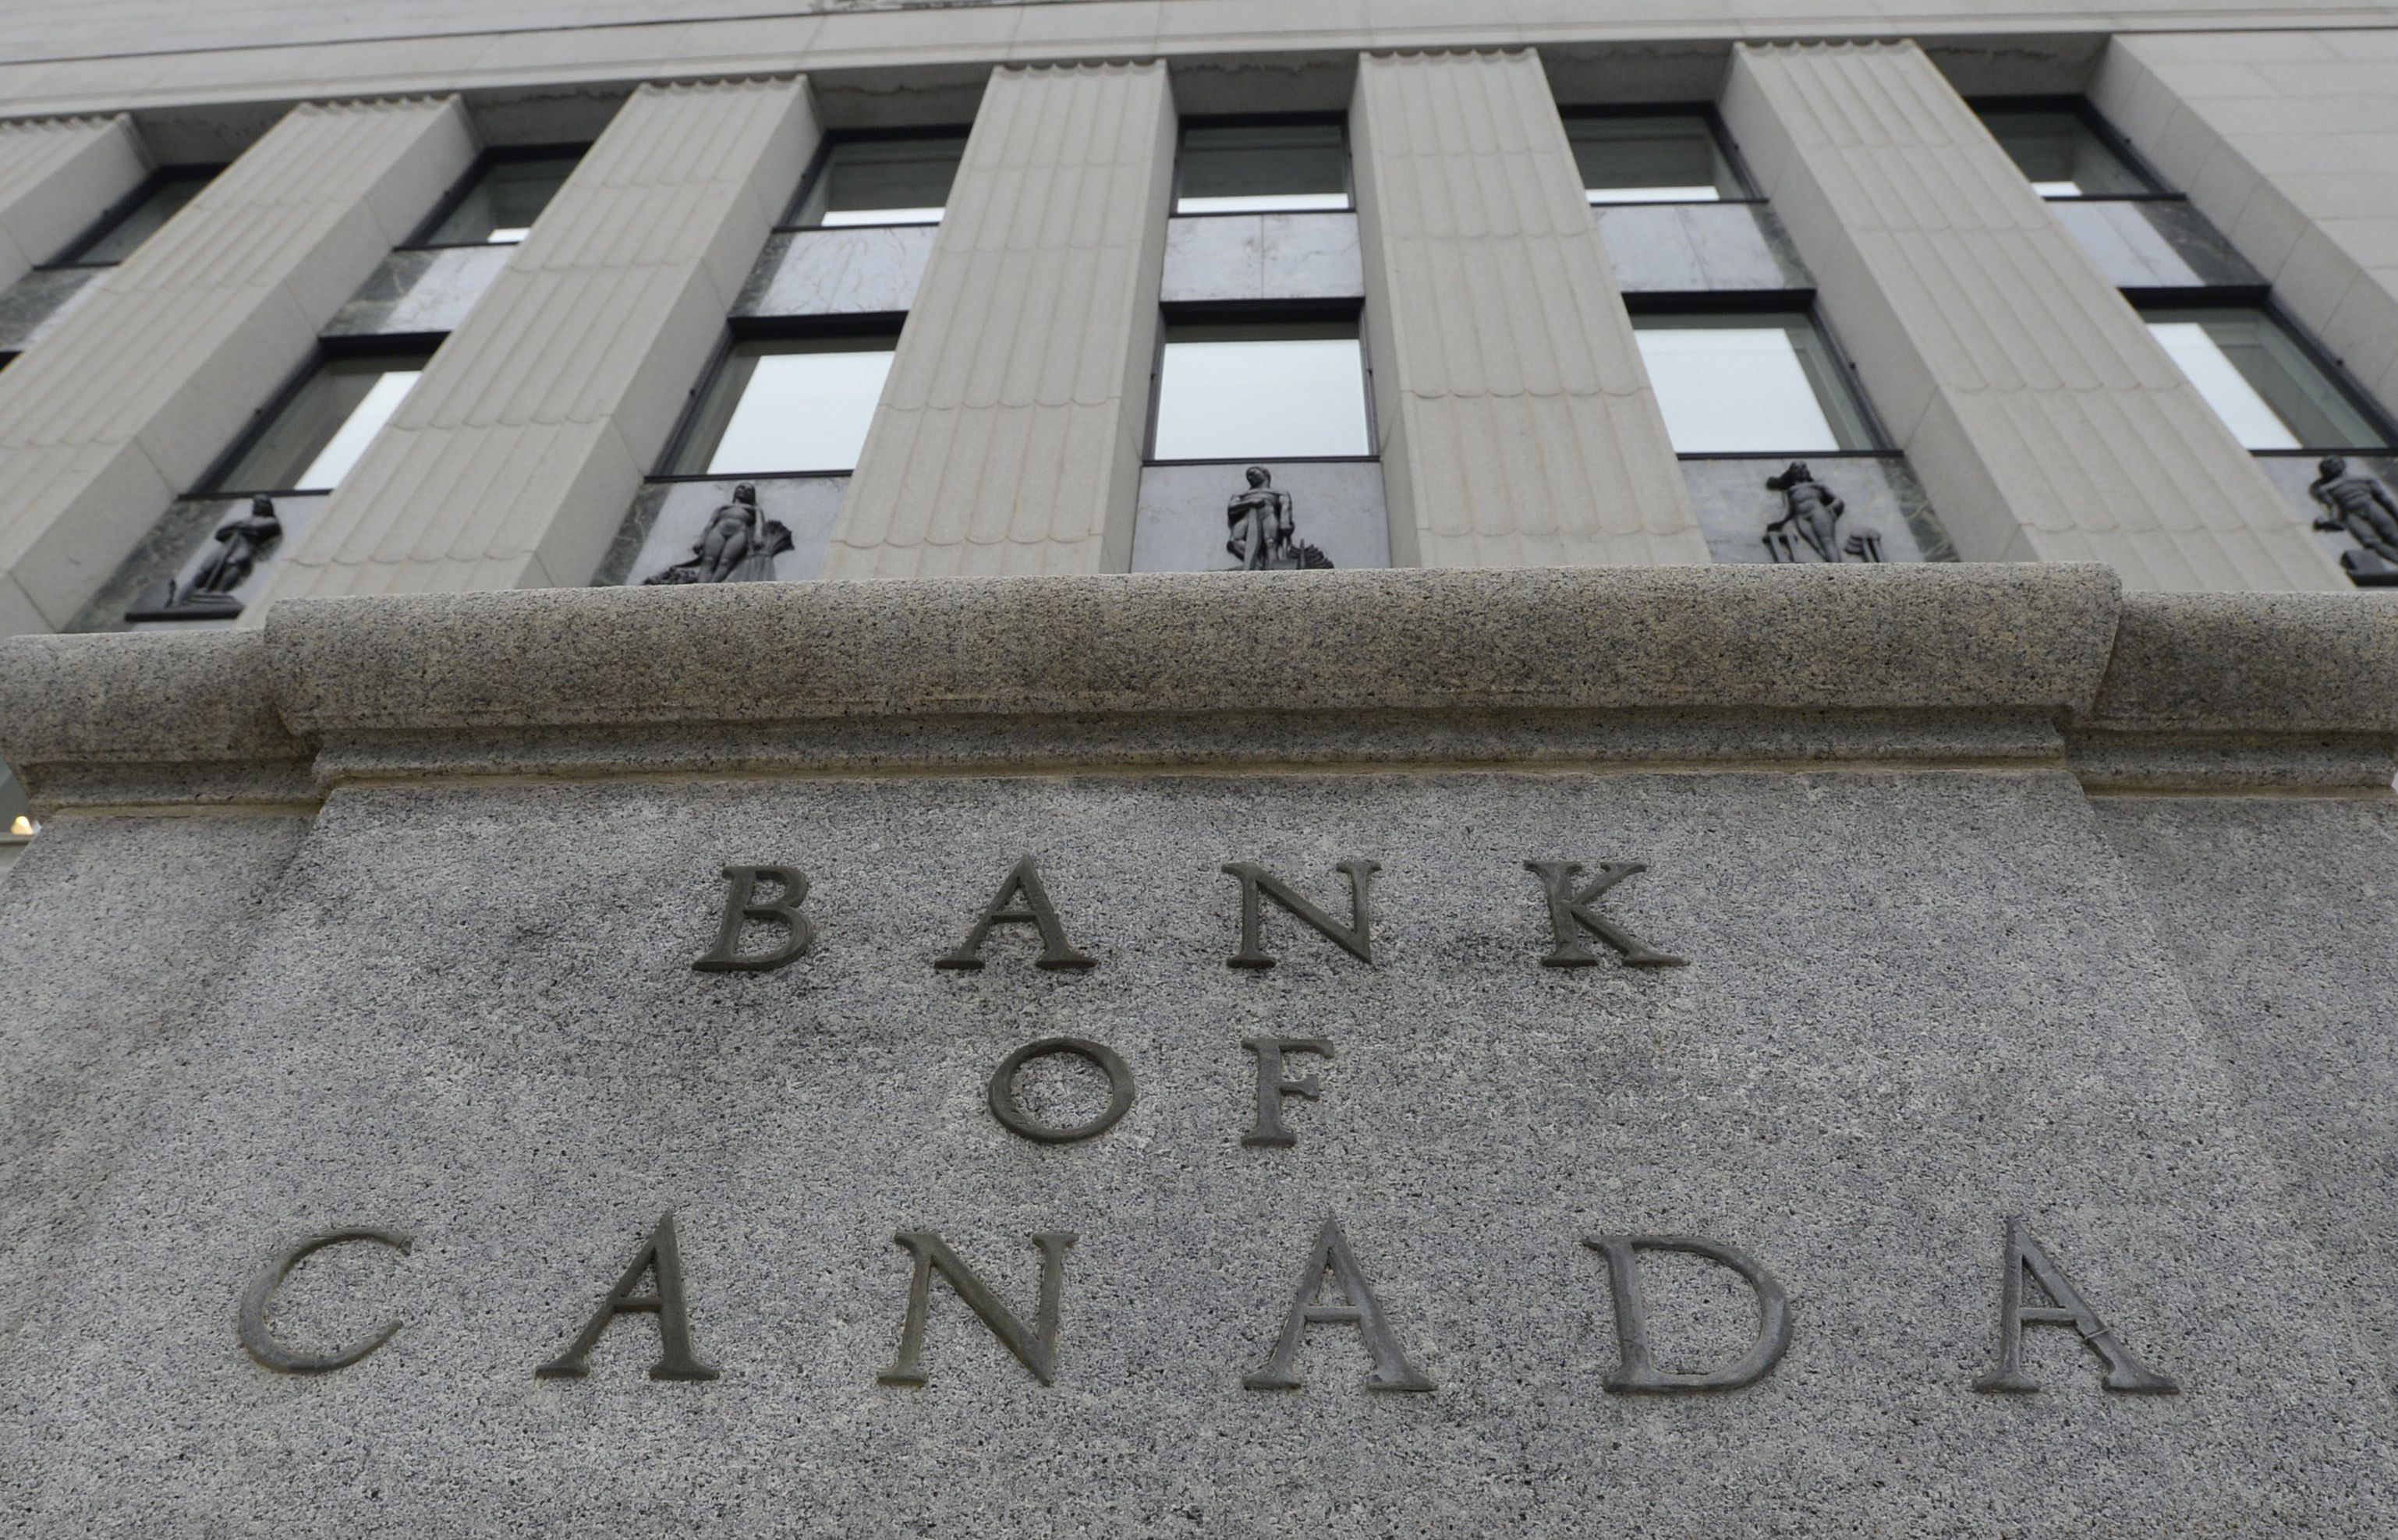 Bank of Canada planning up to $500-million in bond buybacks